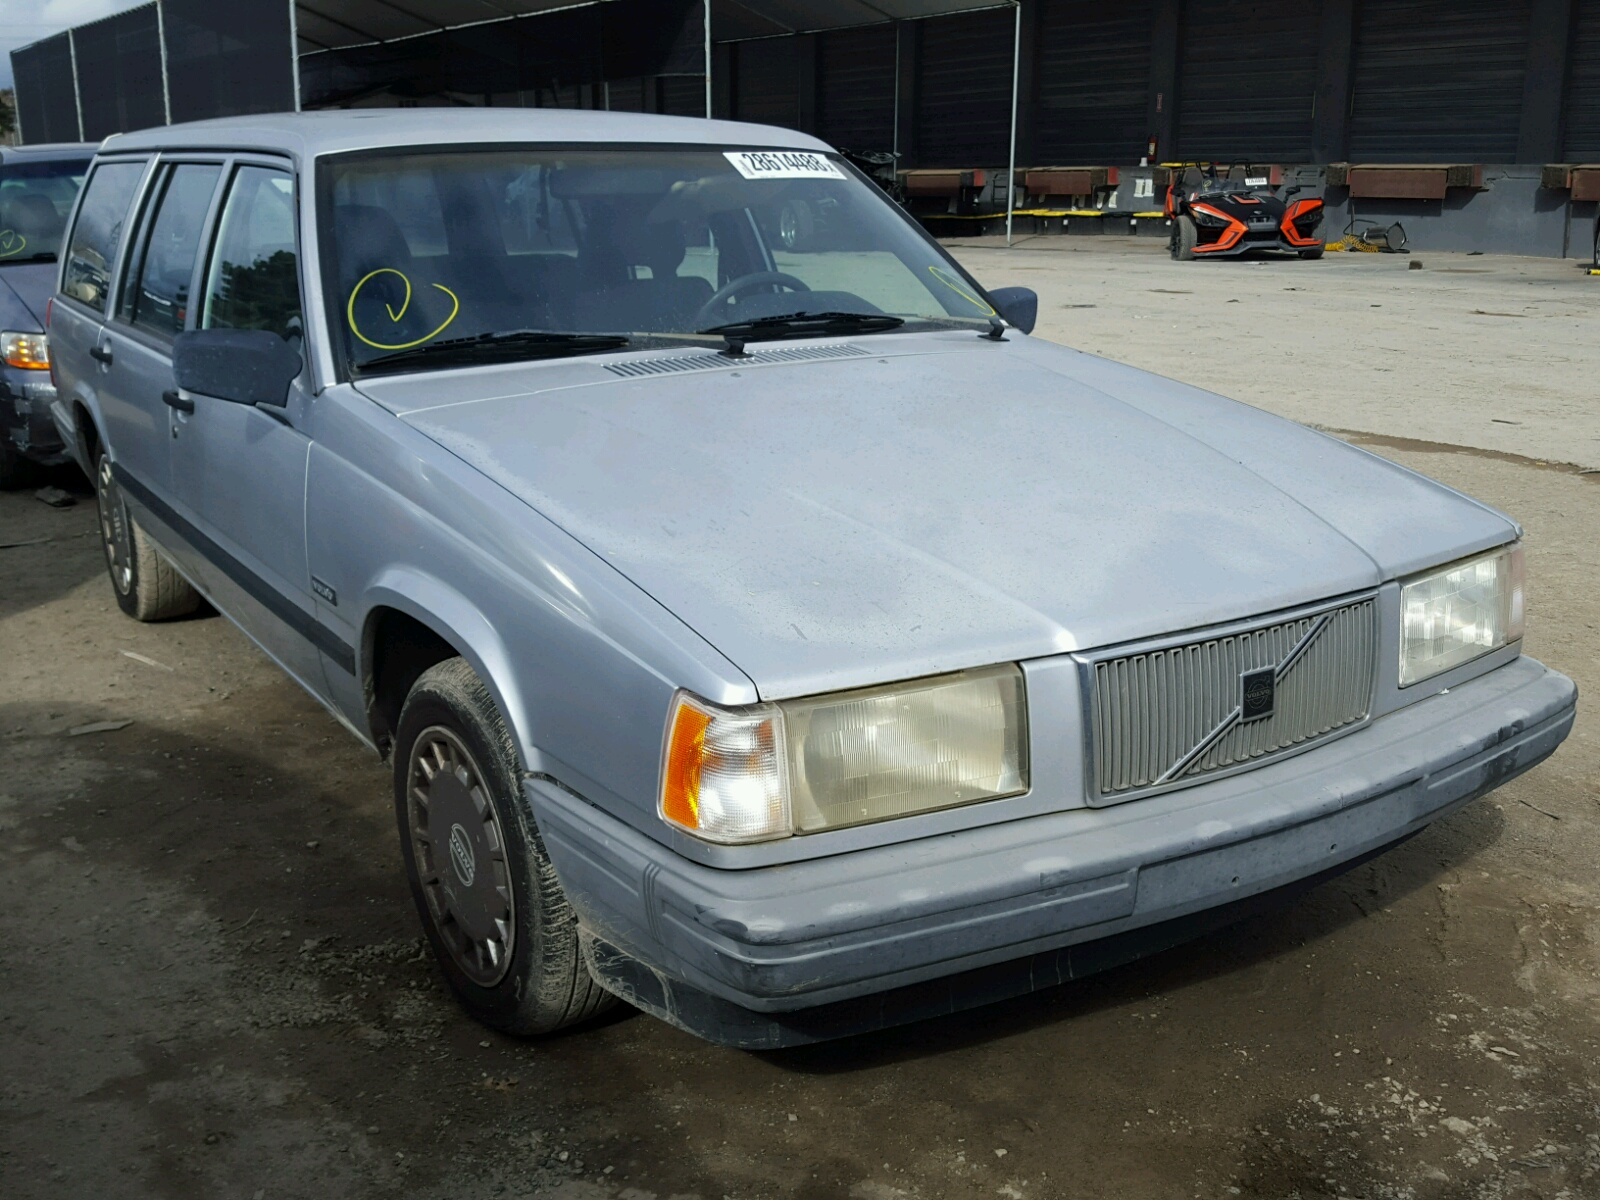 miles volvo pistonheads turbo classifieds cars used in estate models other manual for lancashire sale diesel